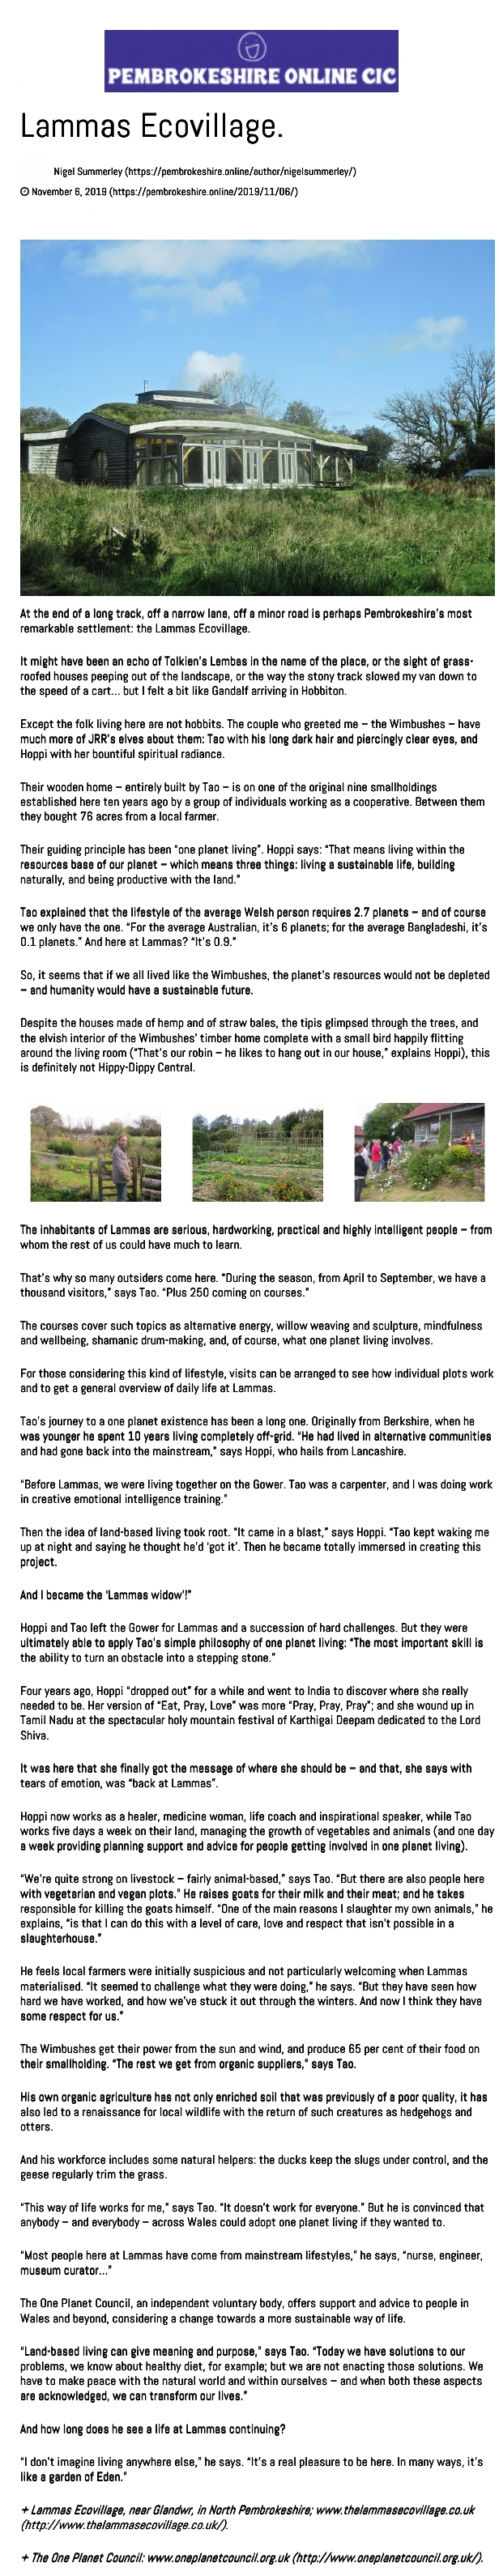 Lammas ecovillage article